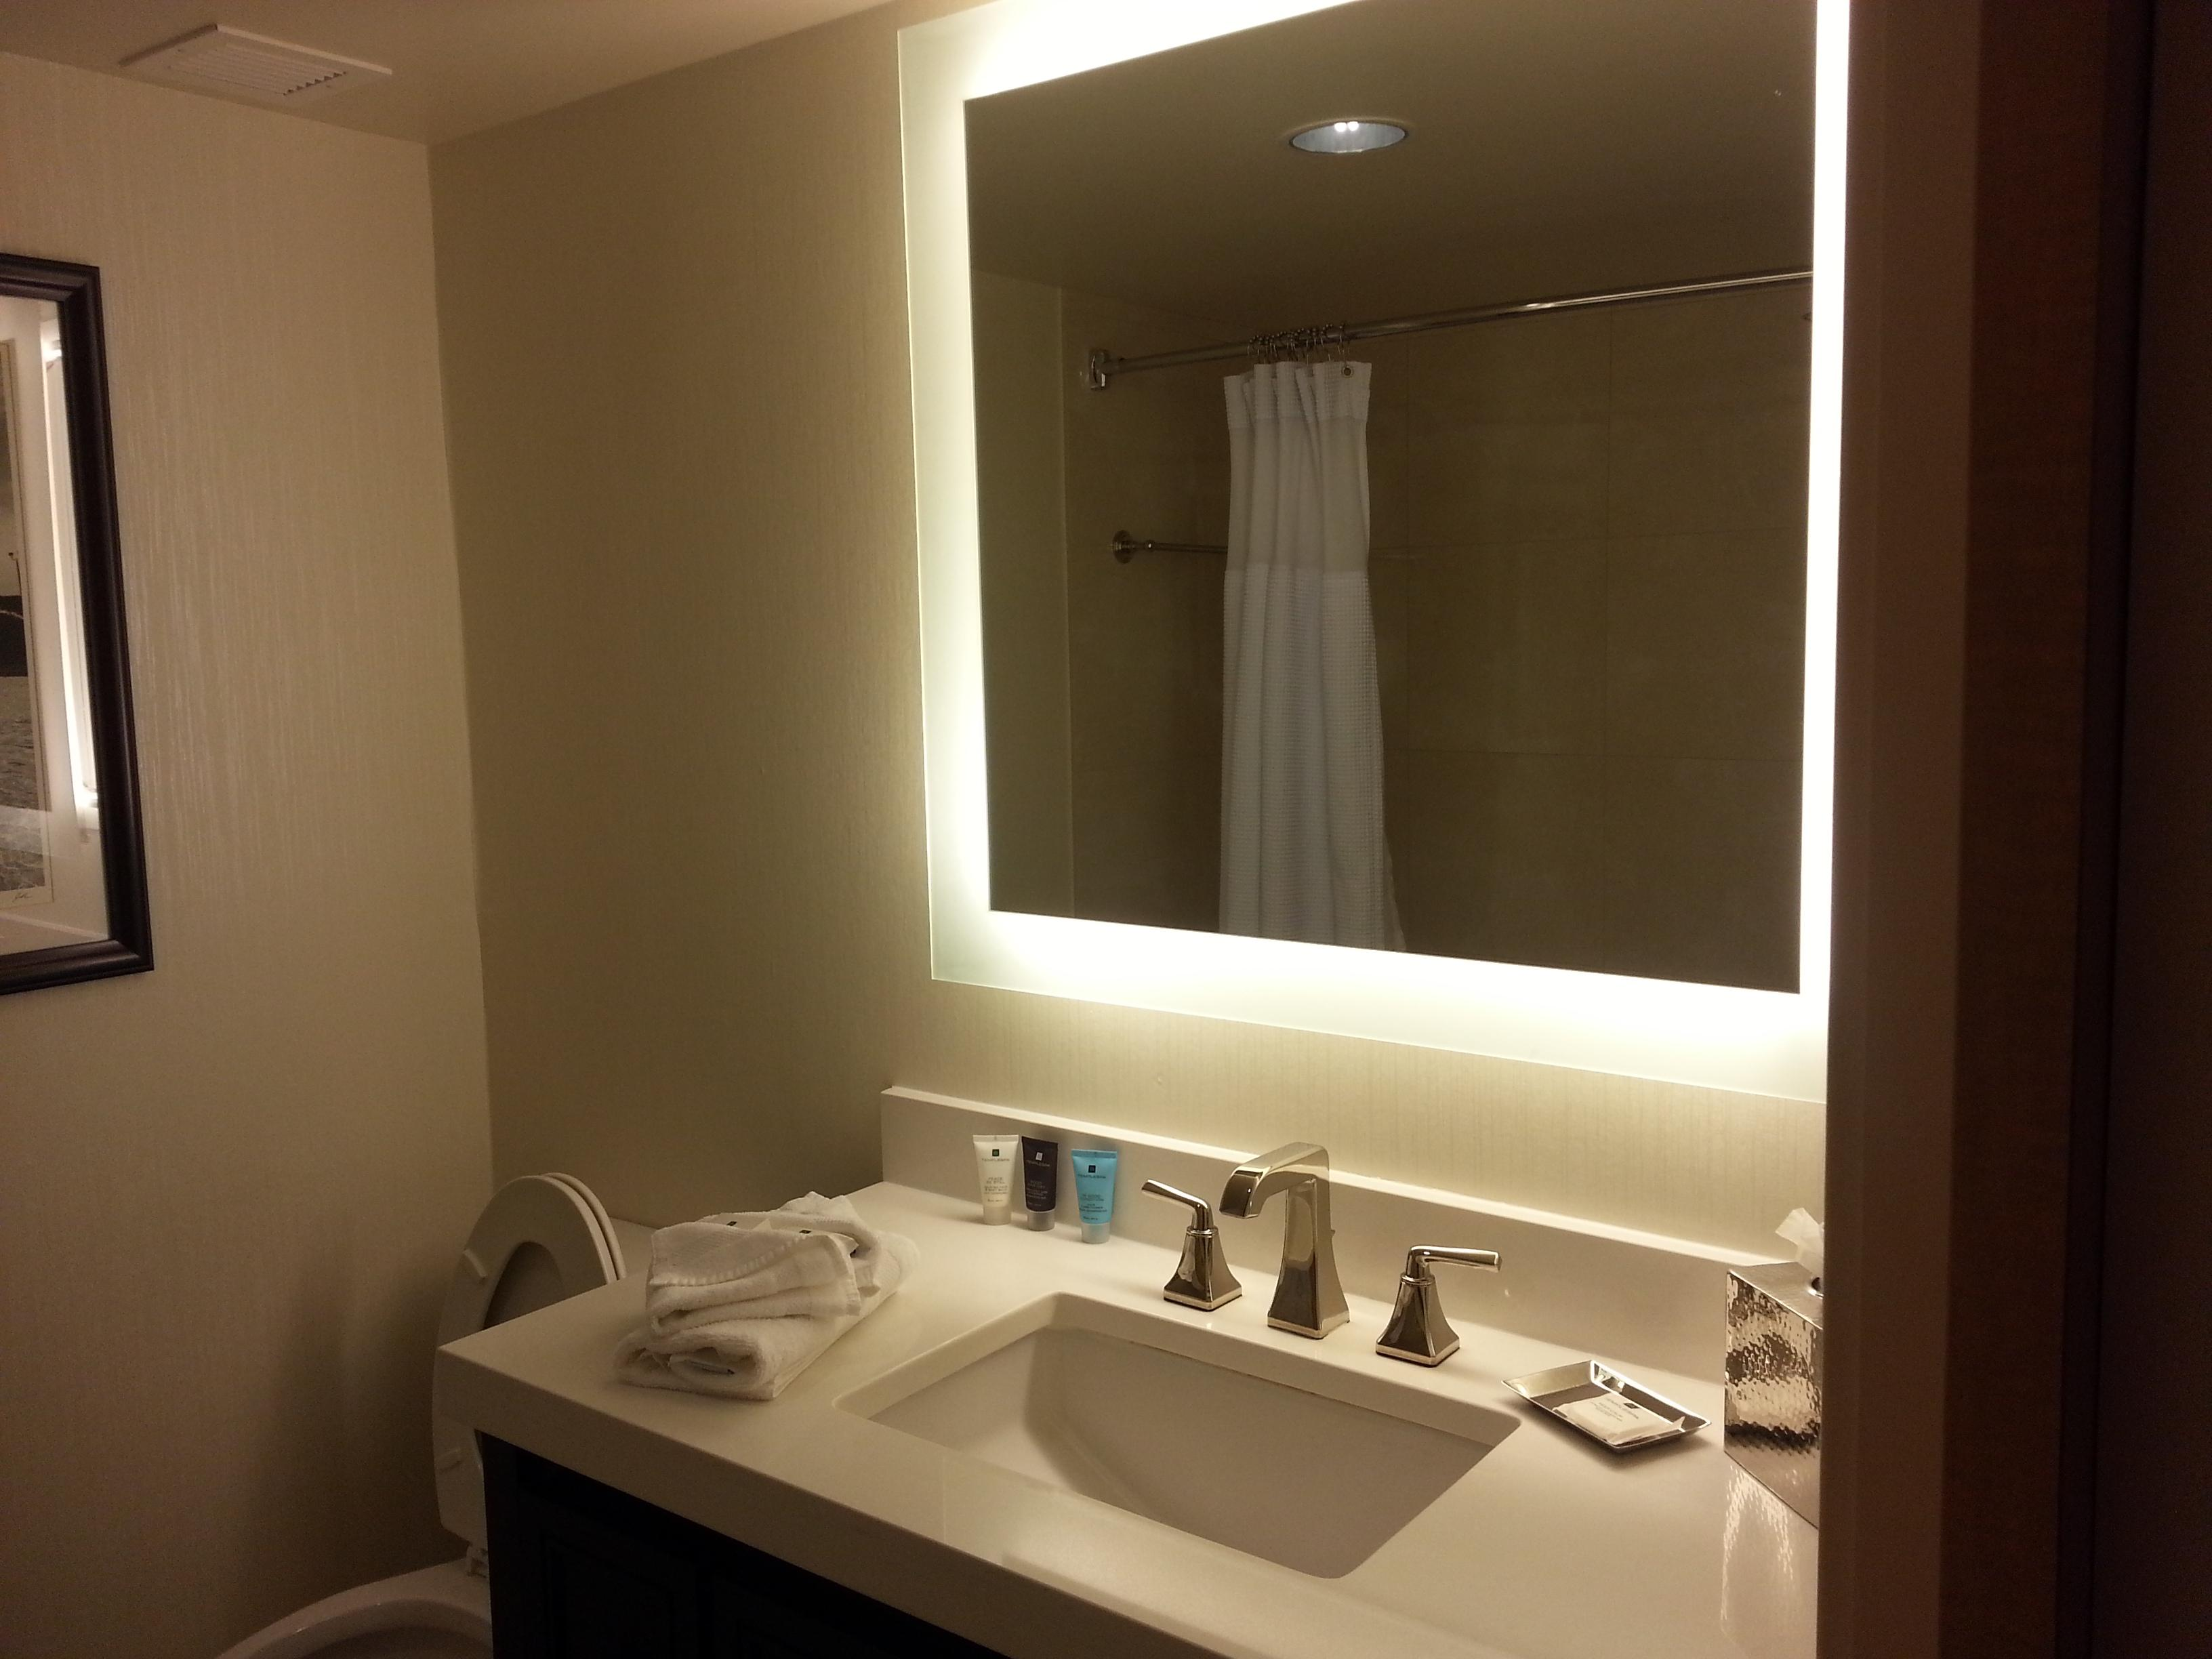 Bathroom Remodeling King Of Prussia Pa bathroom vanities king of prussia pa - bathroom design